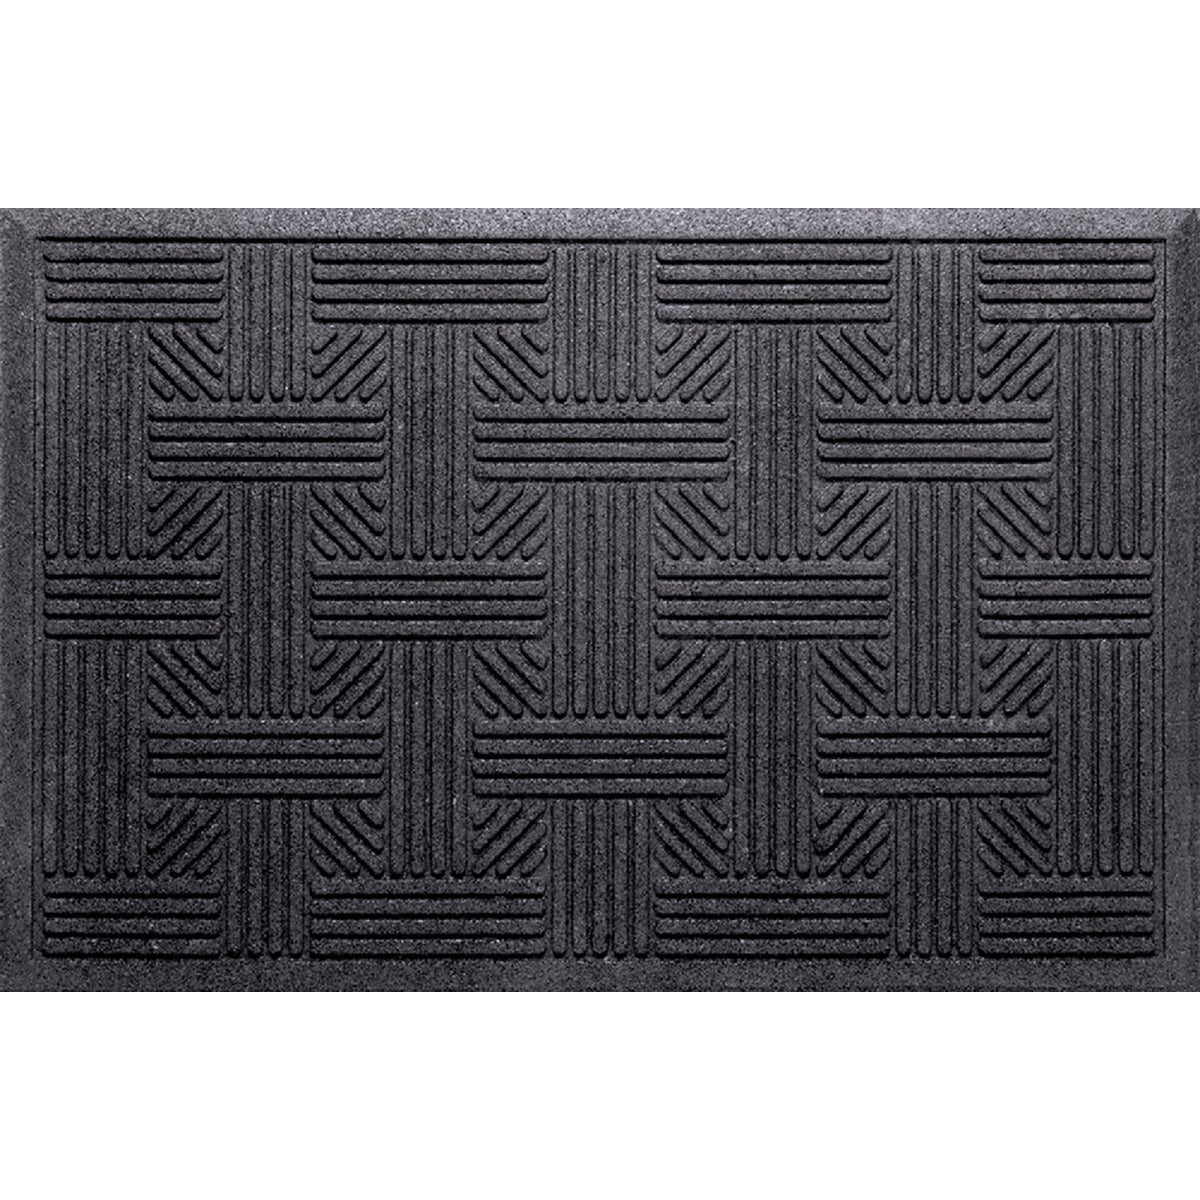 17X28 TRP BLK DOOR MAT - 060-9506 by Apache Mills